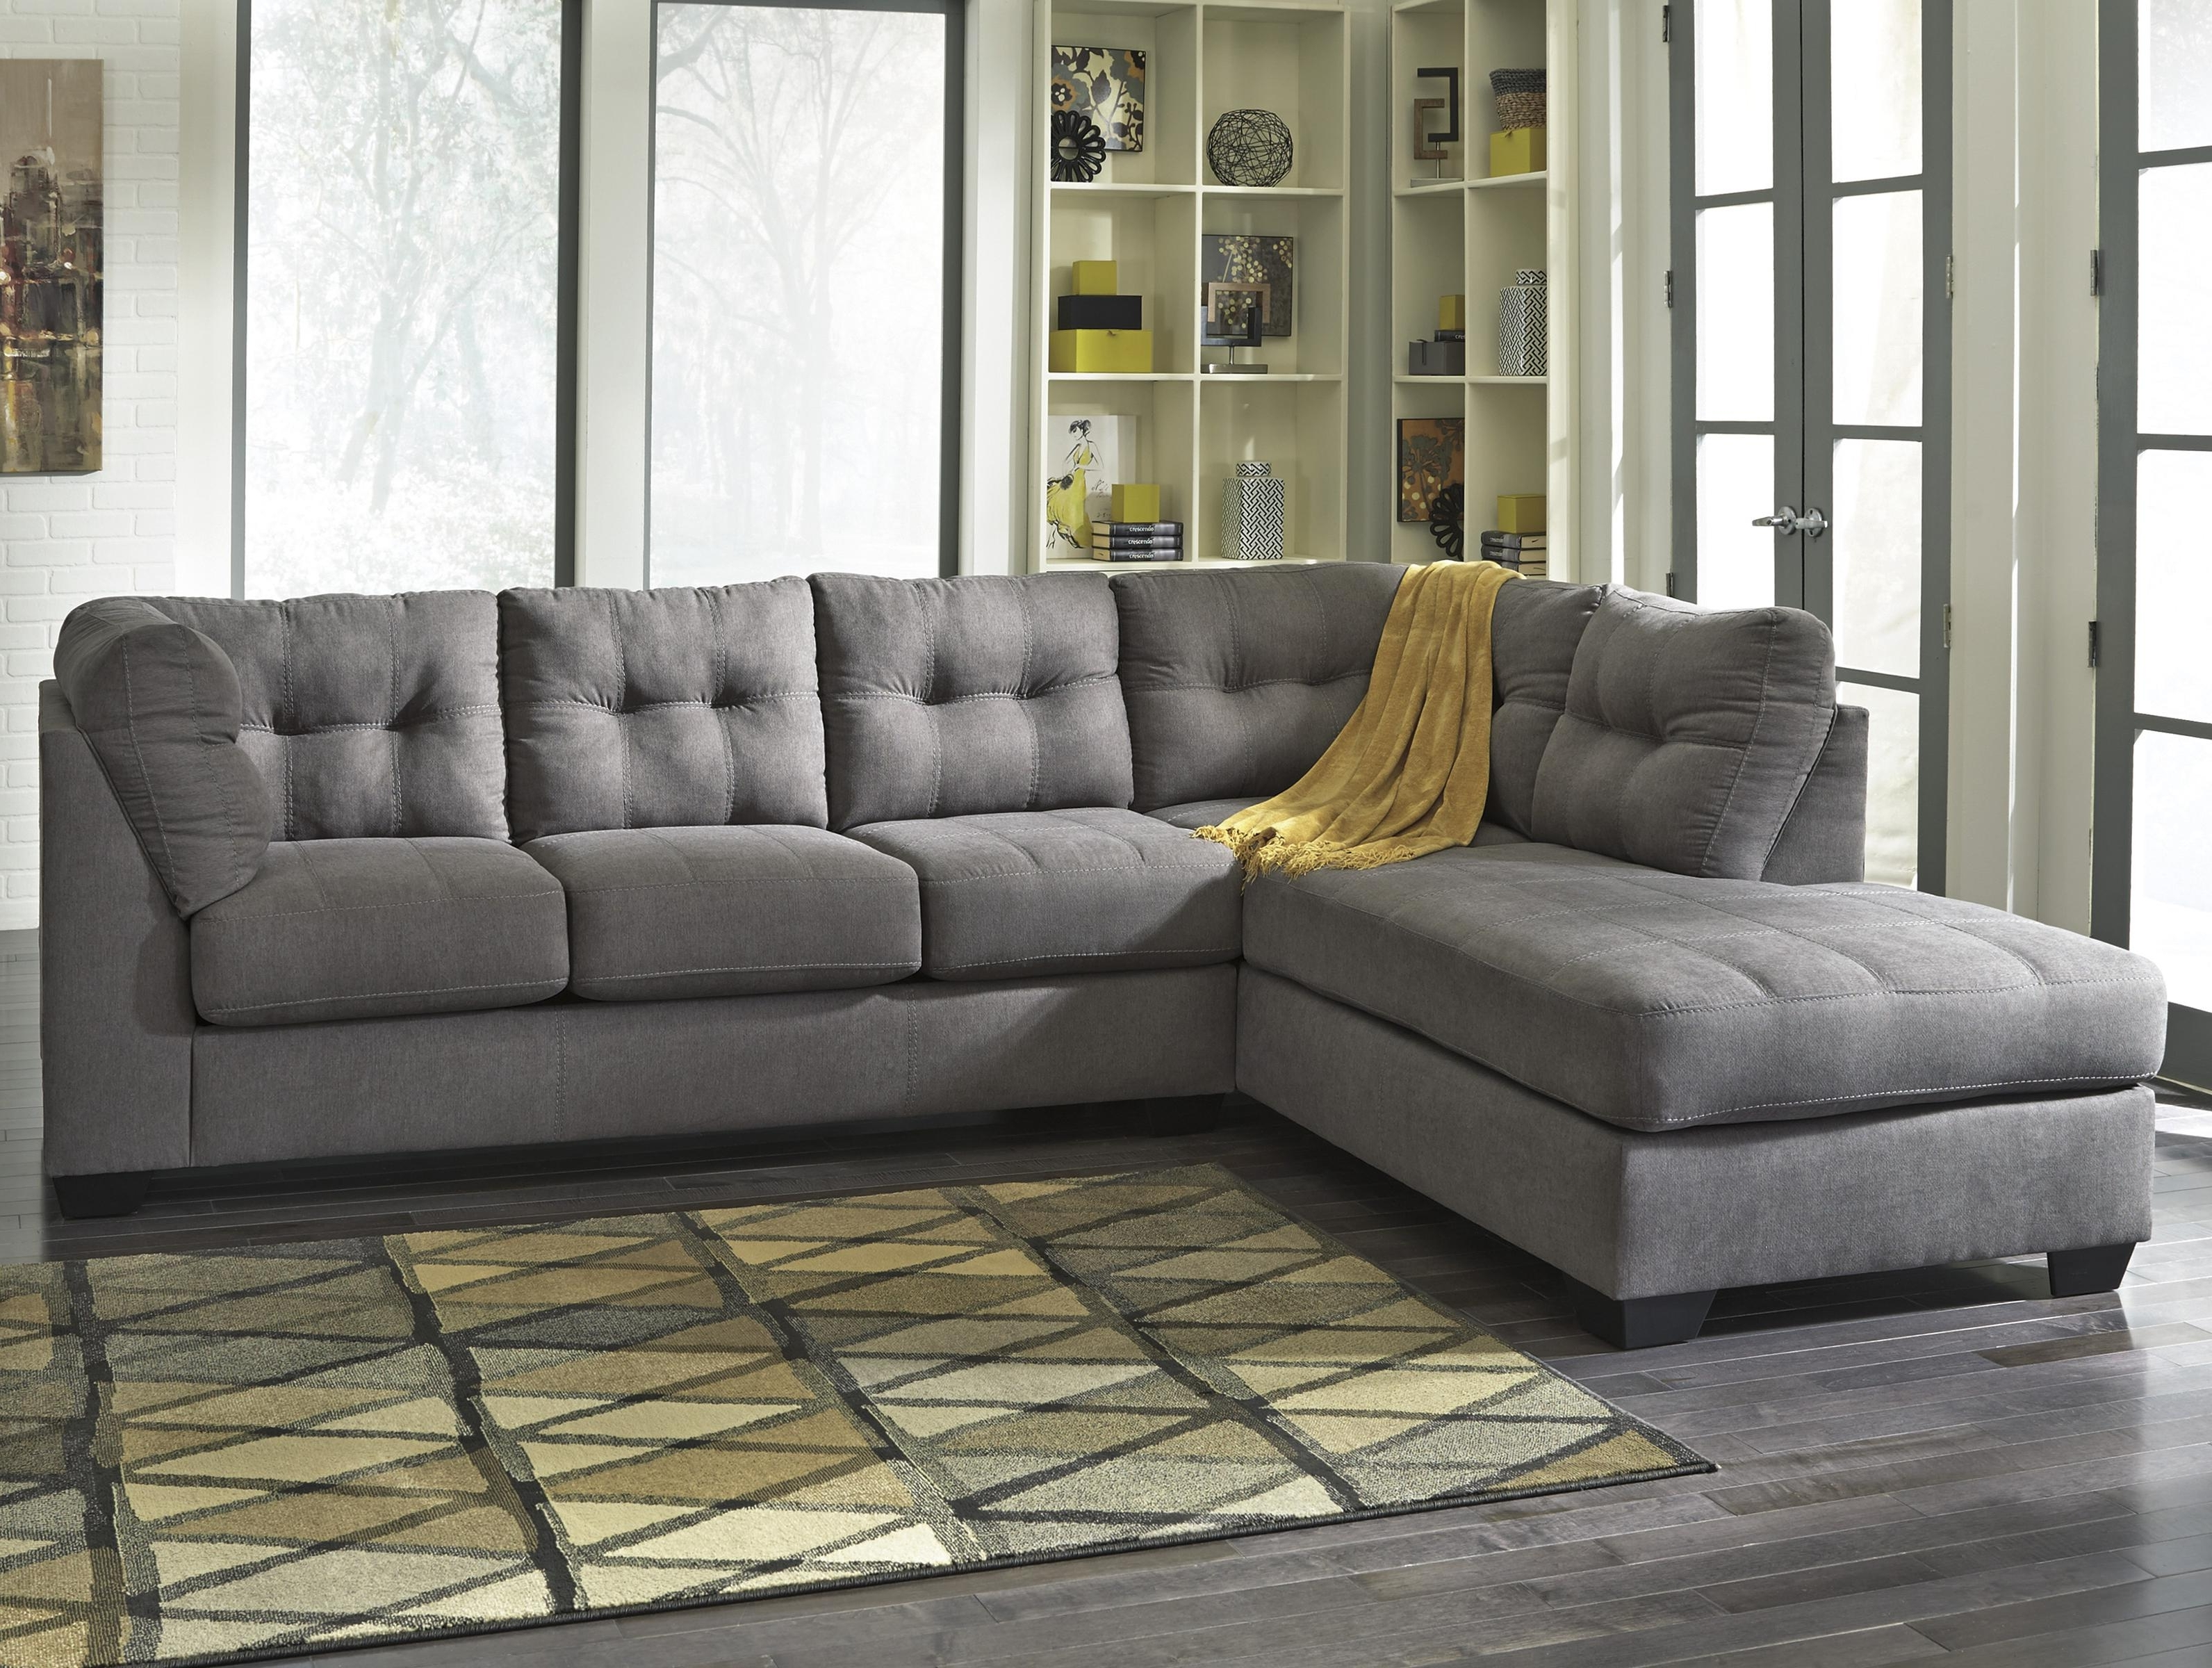 Benchcraftashley Maier – Charcoal 2 Piece Sectional With Left Pertaining To Recent Sectional Sofas At Birmingham Al (View 8 of 15)